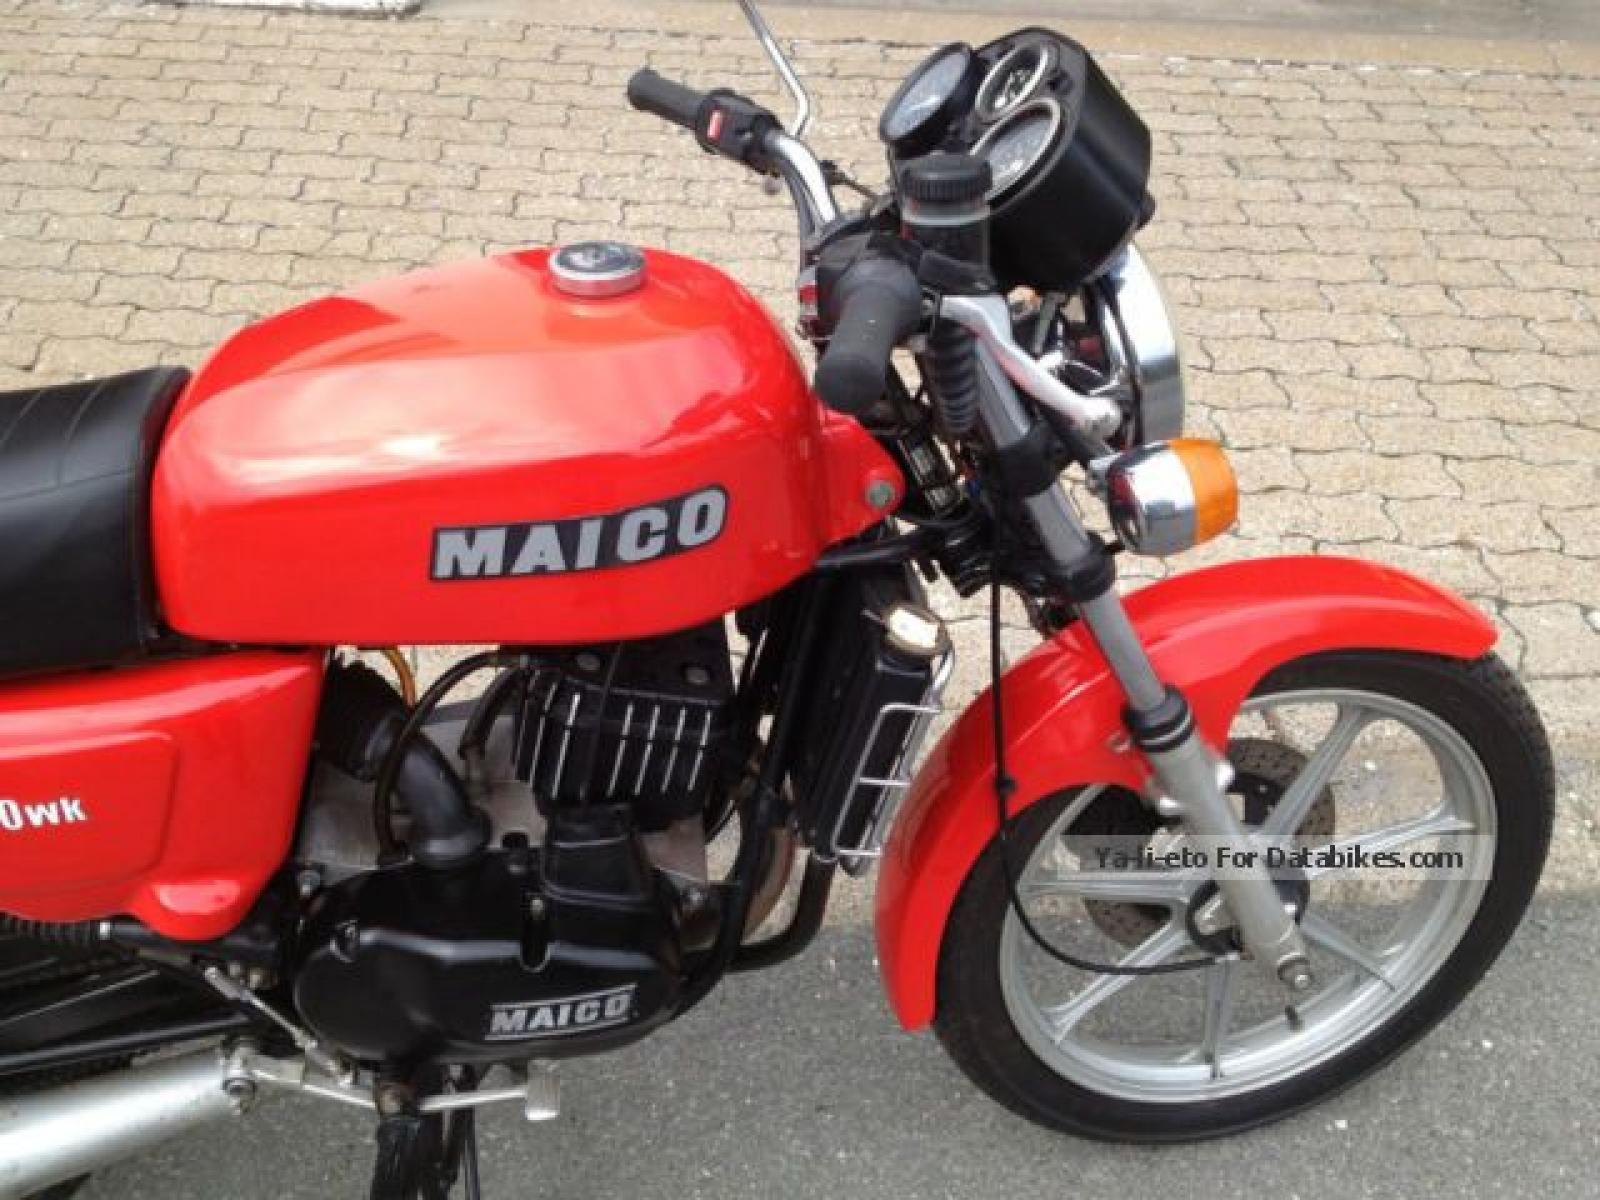 Maico MD 250 WK images #102801